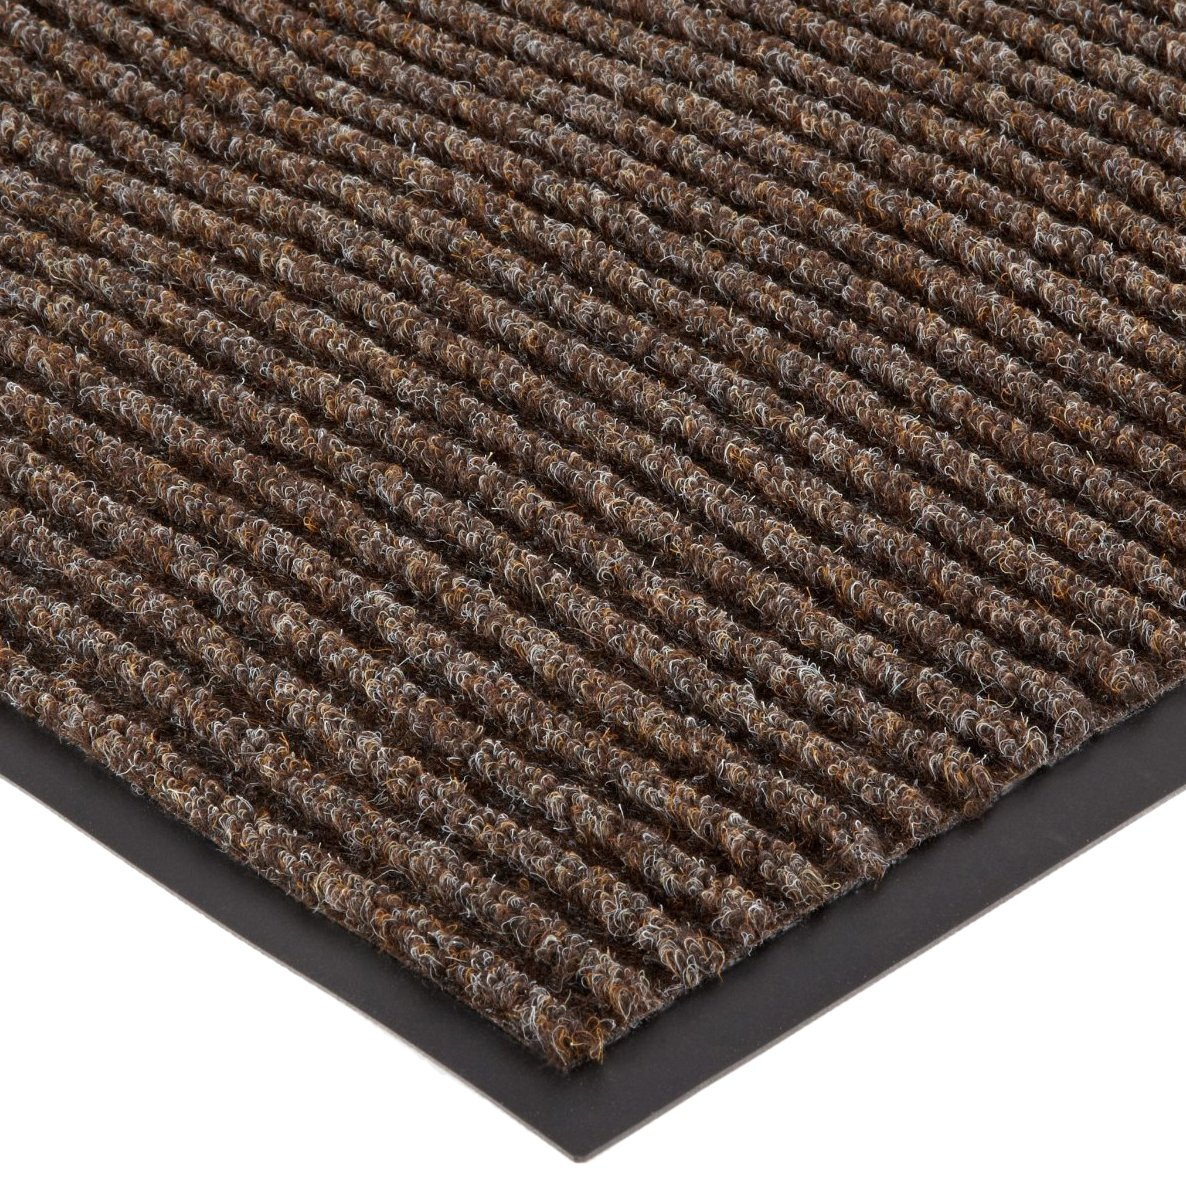 Durable Spectra-Rib Vinyl Backed Indoor Entrance Mat, 4 x 8 , Brown